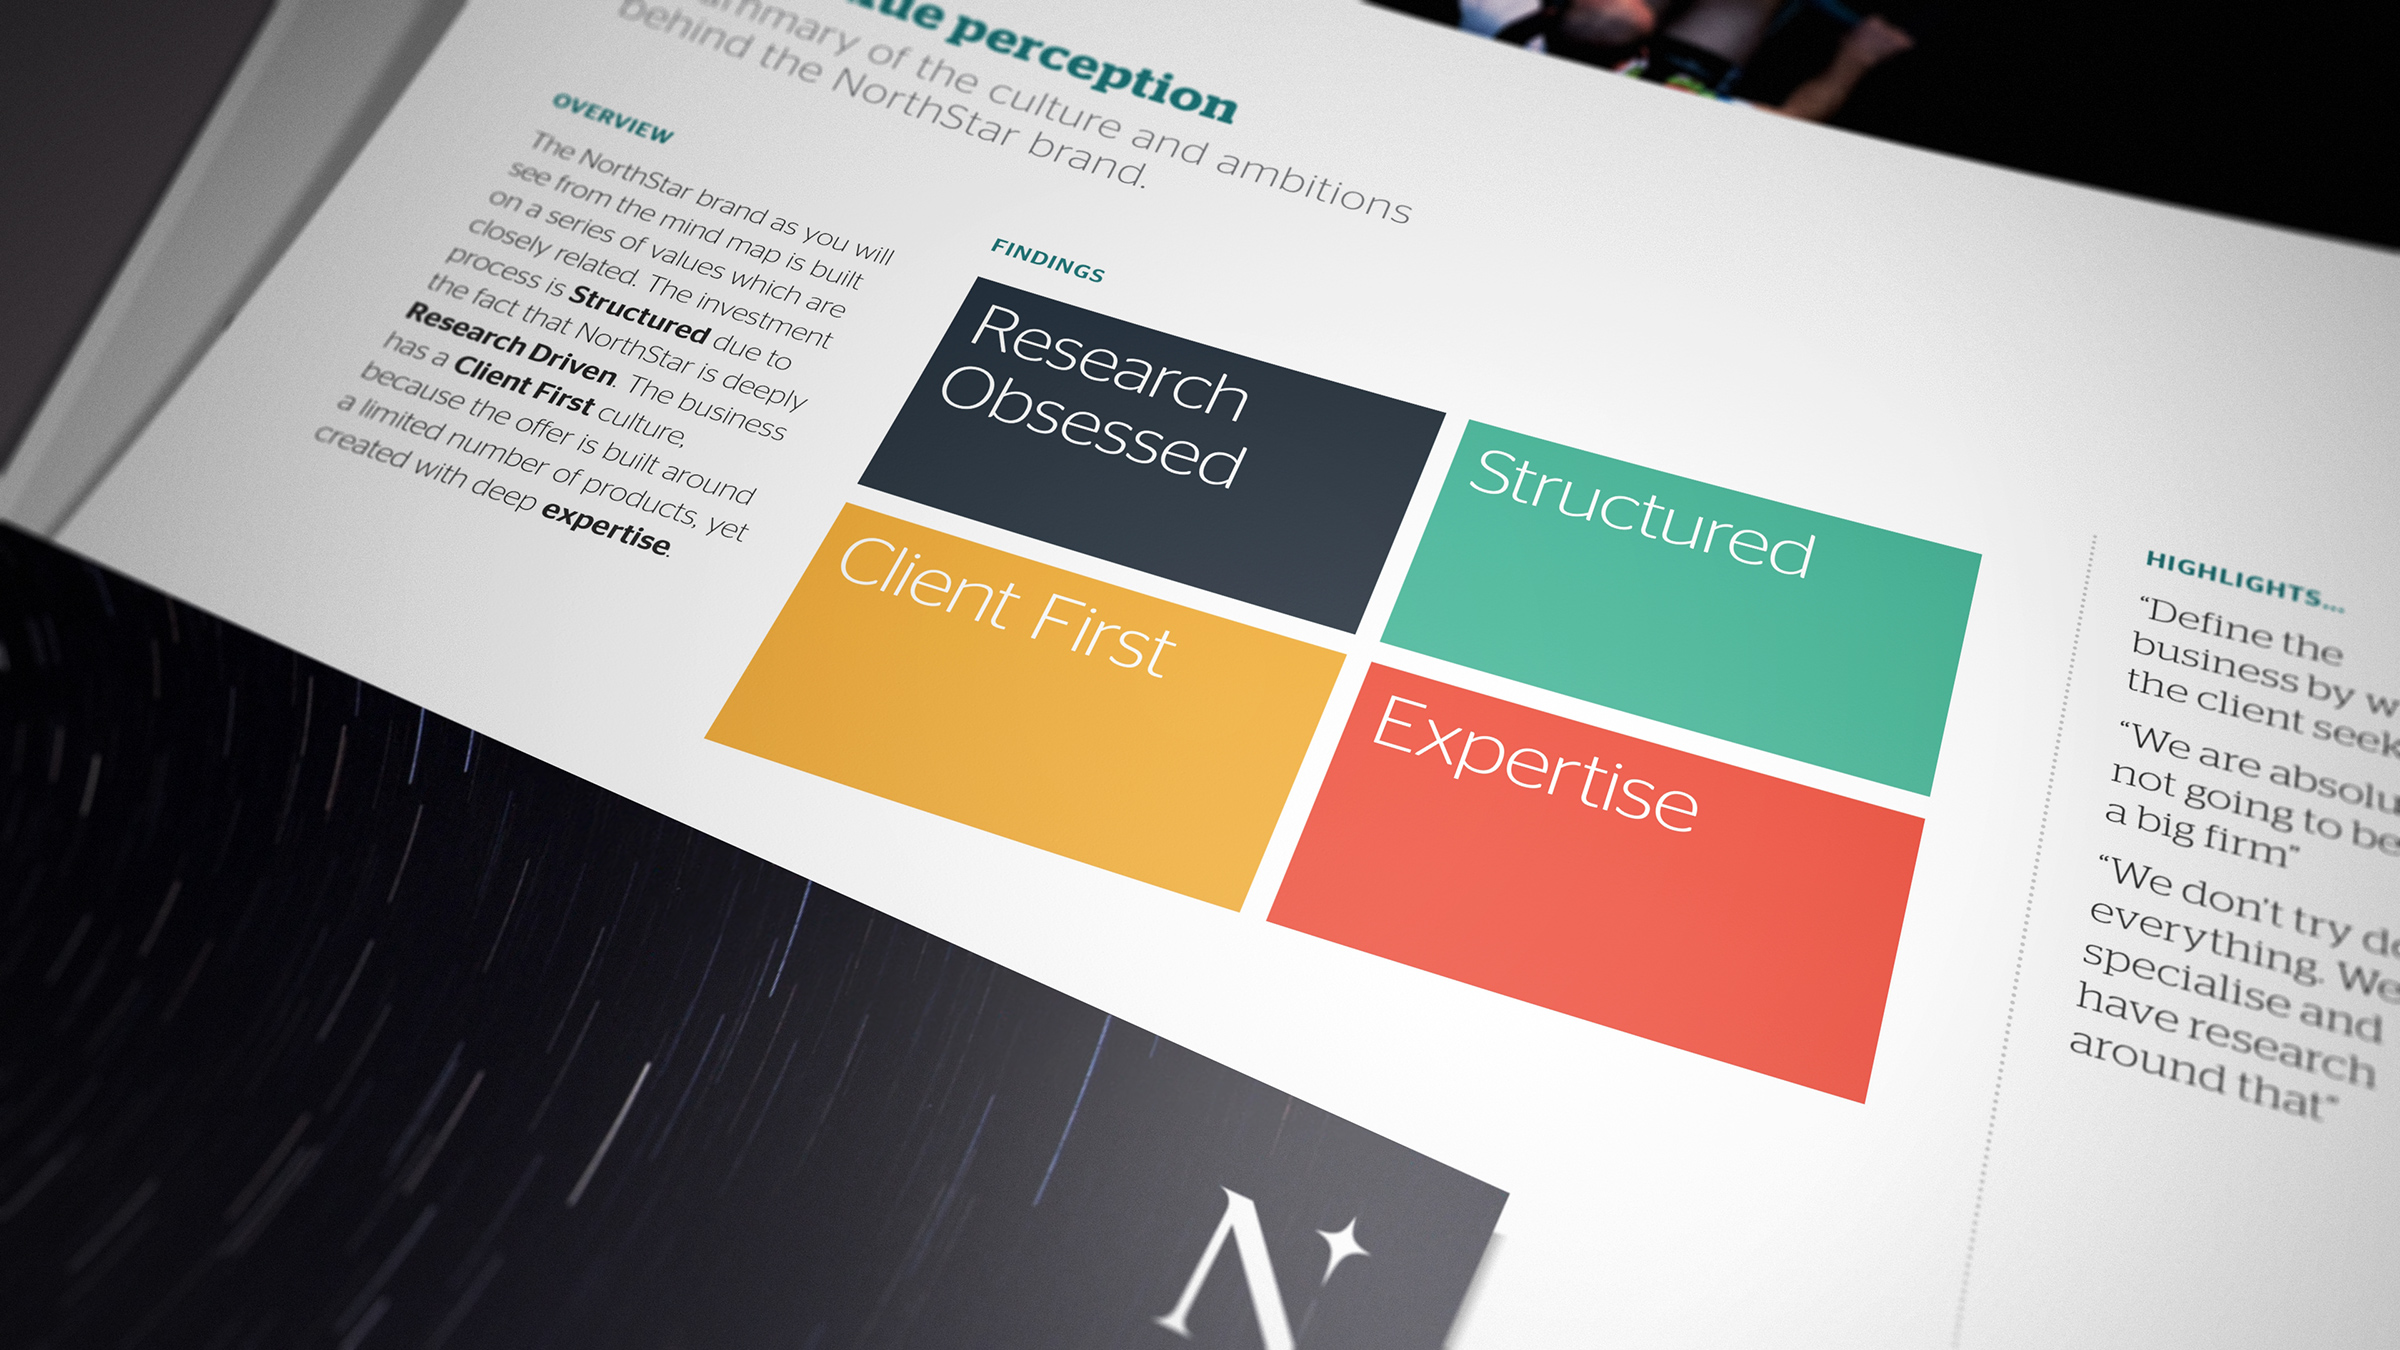 We compressed all the associated brand characteristics into four core pillars of reason.